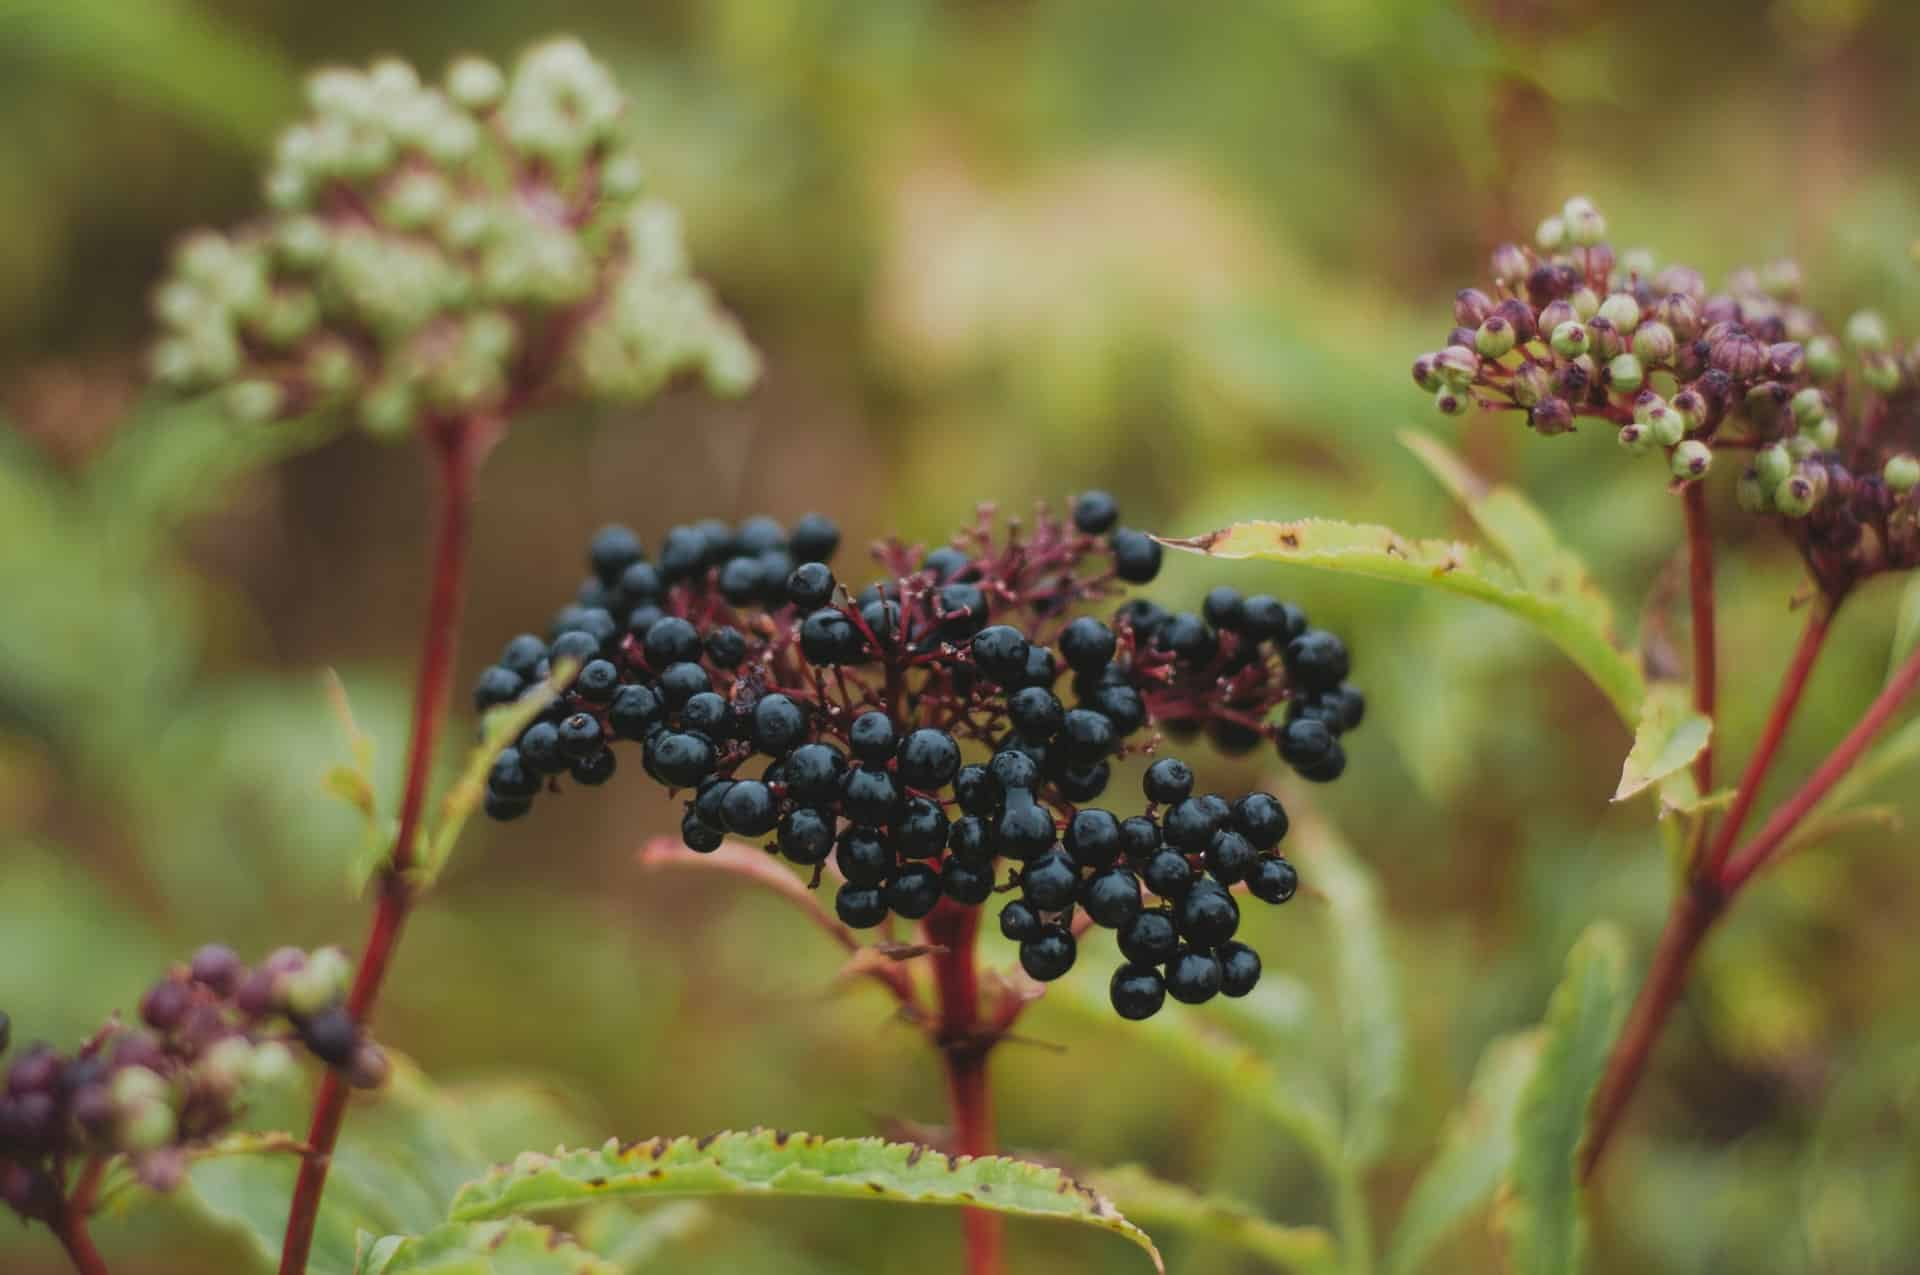 tinctures made from elderberry fruit are a natural herb immunity remedy that is ideal for the common cold and other health ailments